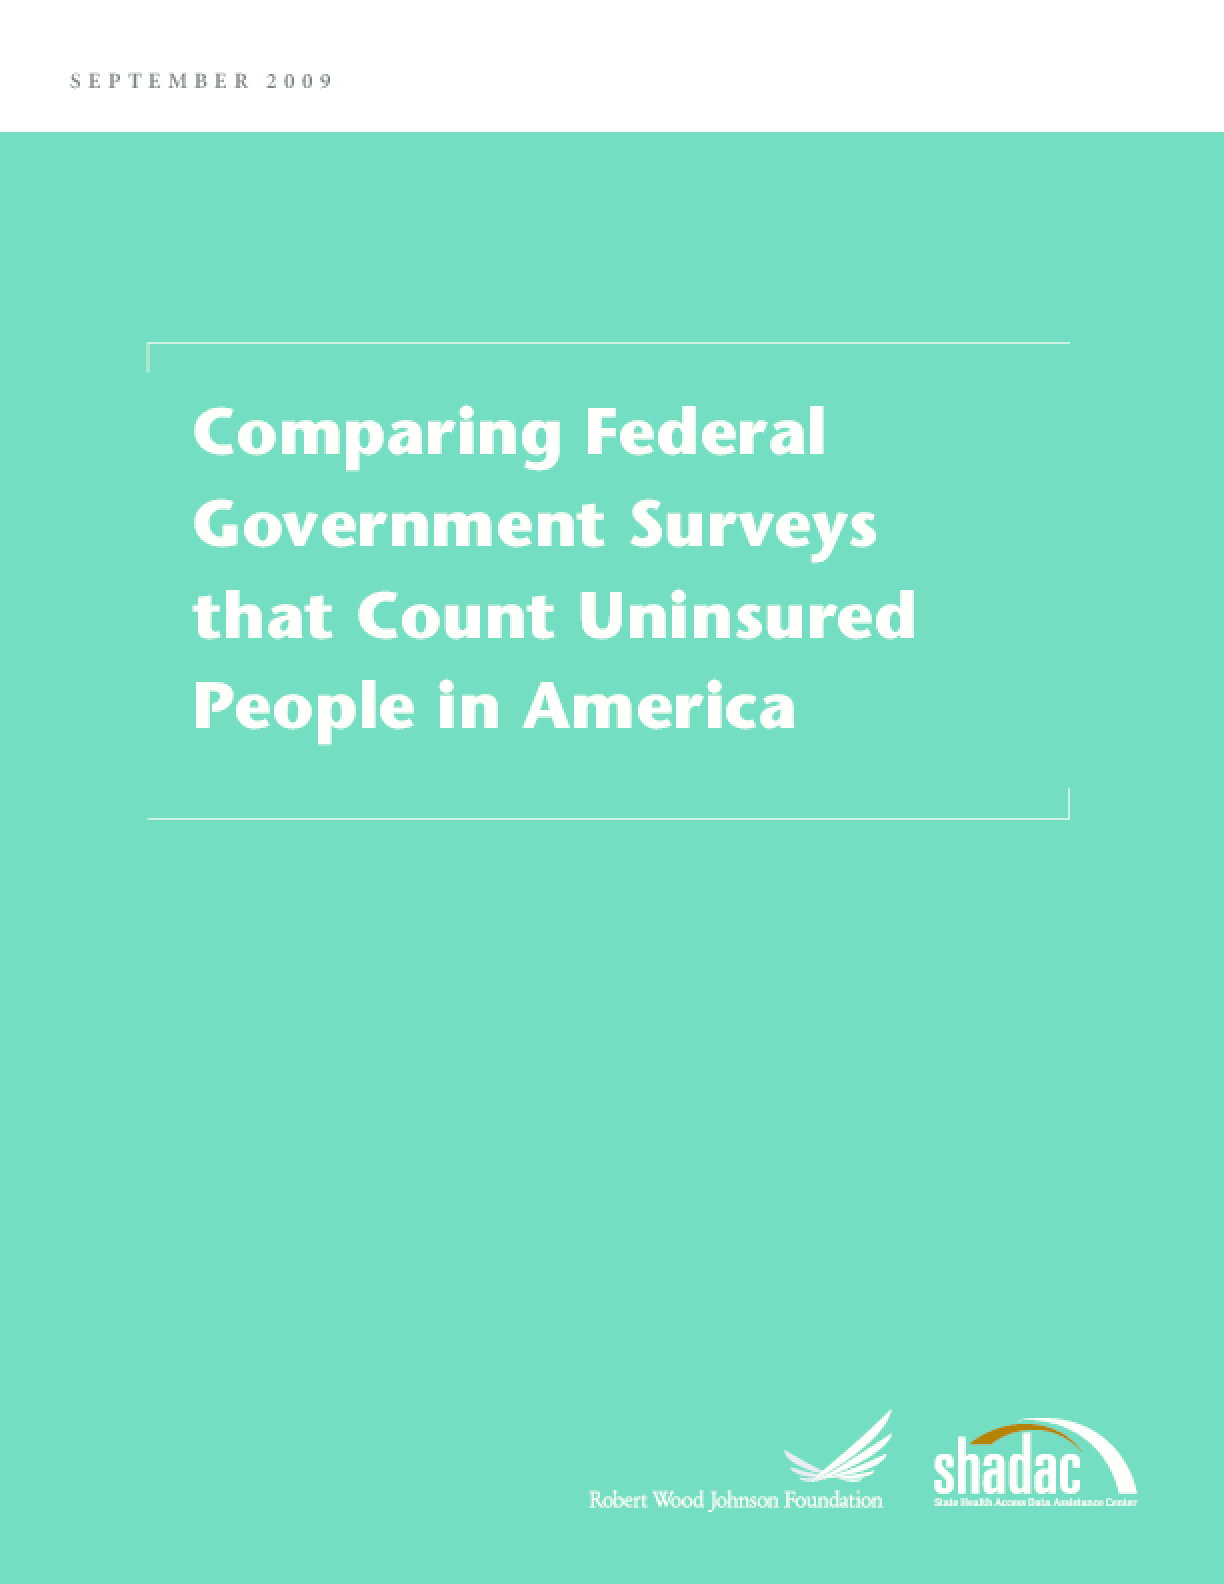 Comparing Federal Government Surveys That Count Uninsured People in America 2009